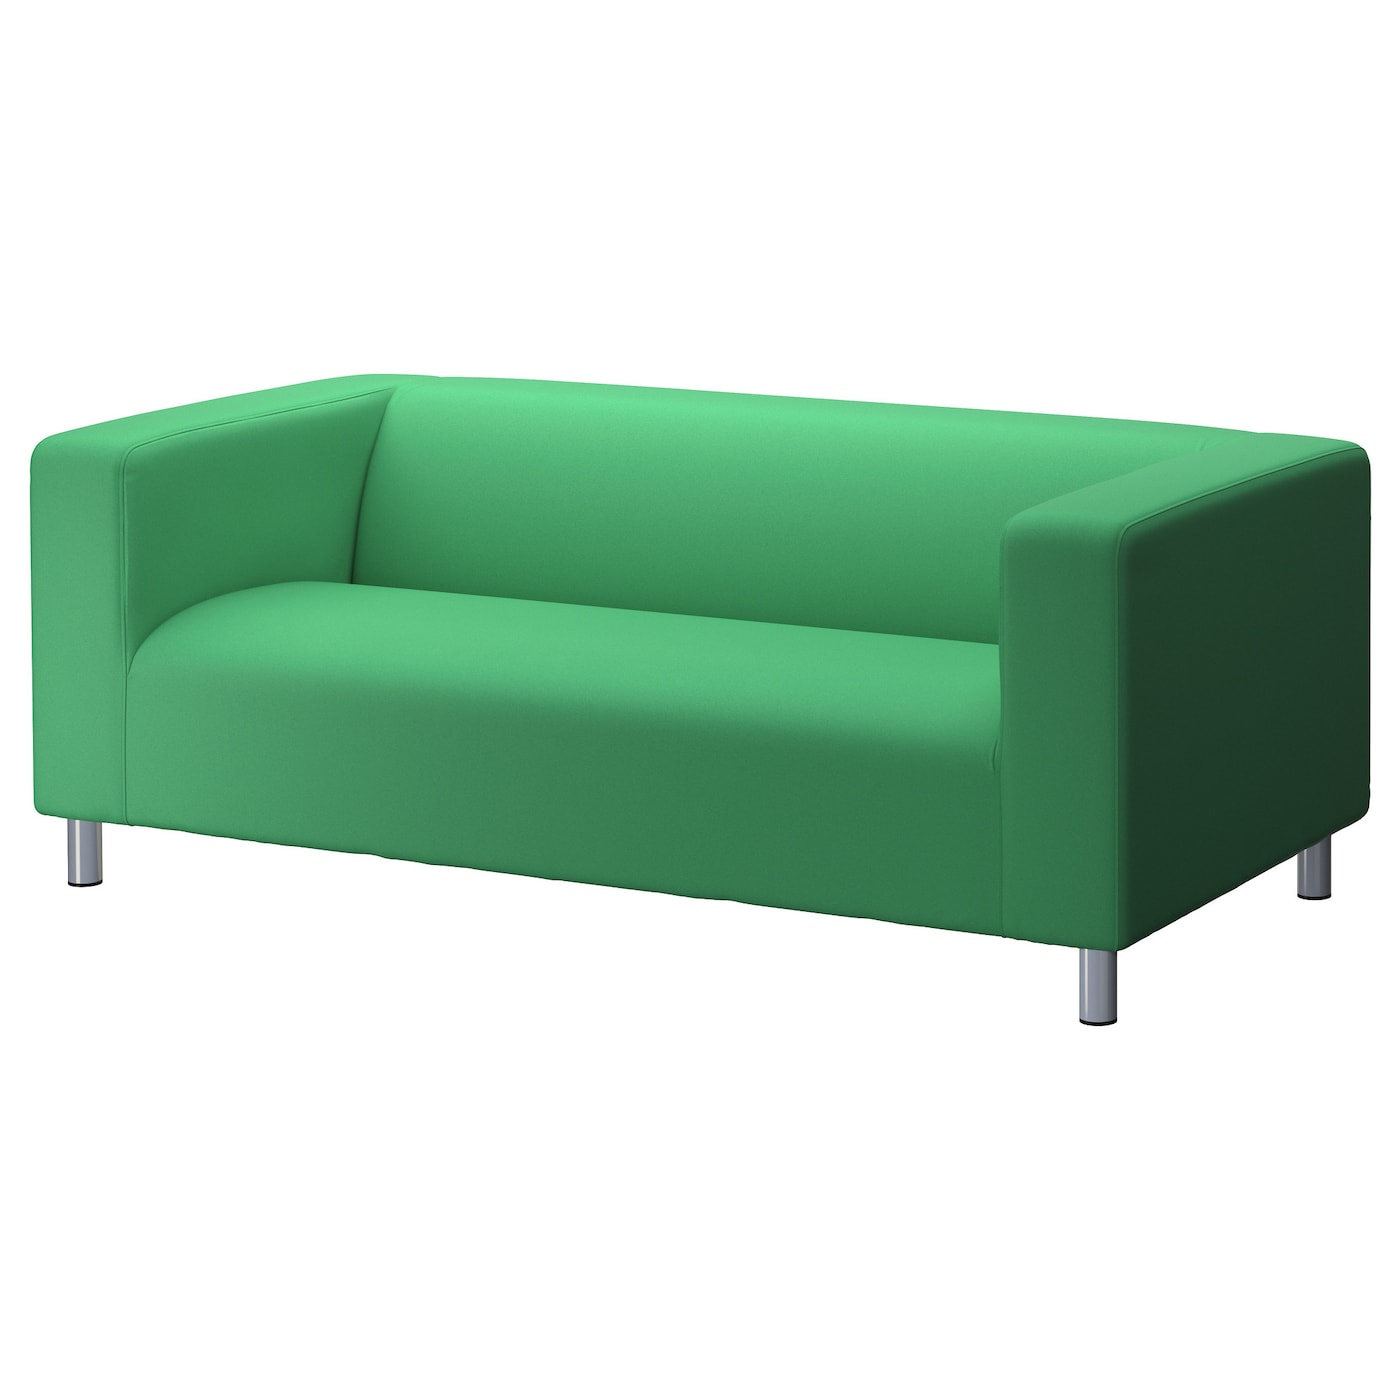 Klippan cover two seat sofa flackarp green ikea Klippan loveseat covers